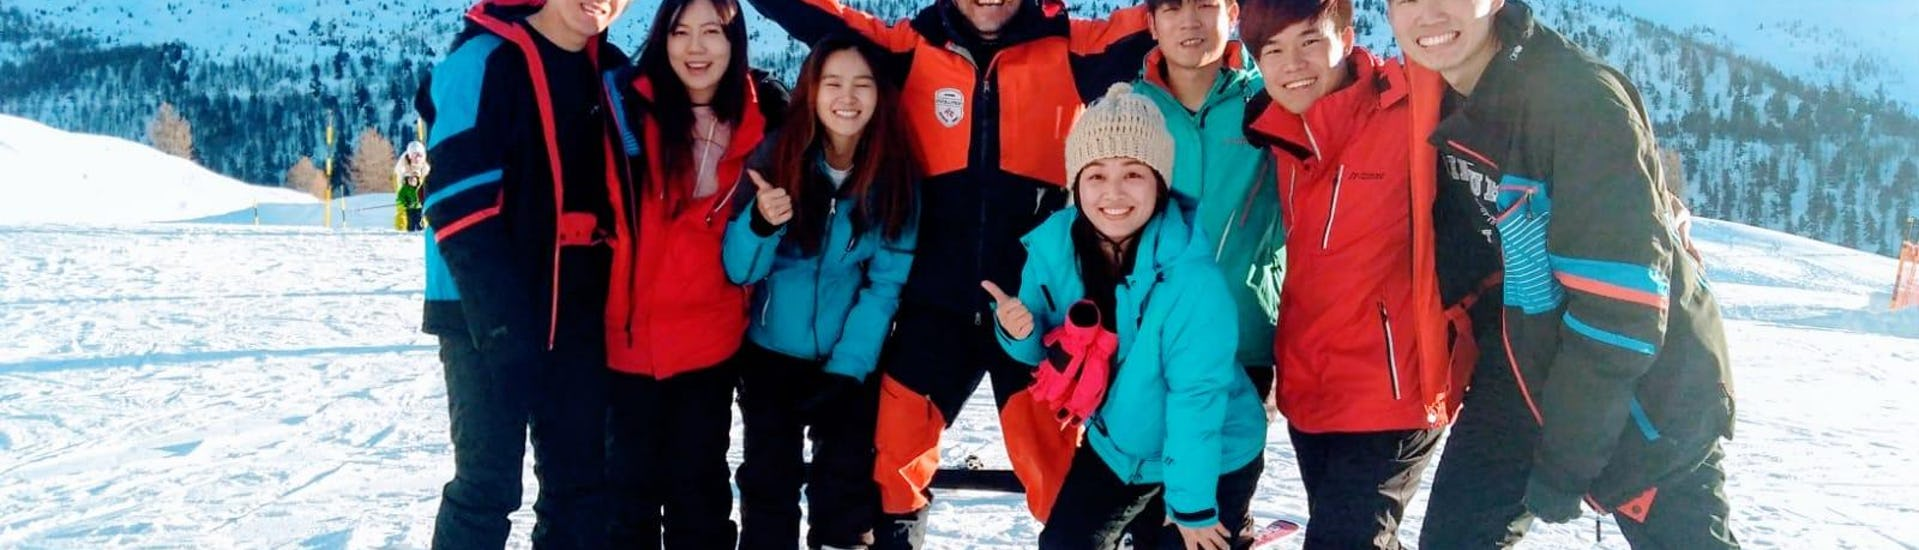 """Ski Instructor Private for Adults """"Halfday"""" - All Levels"""